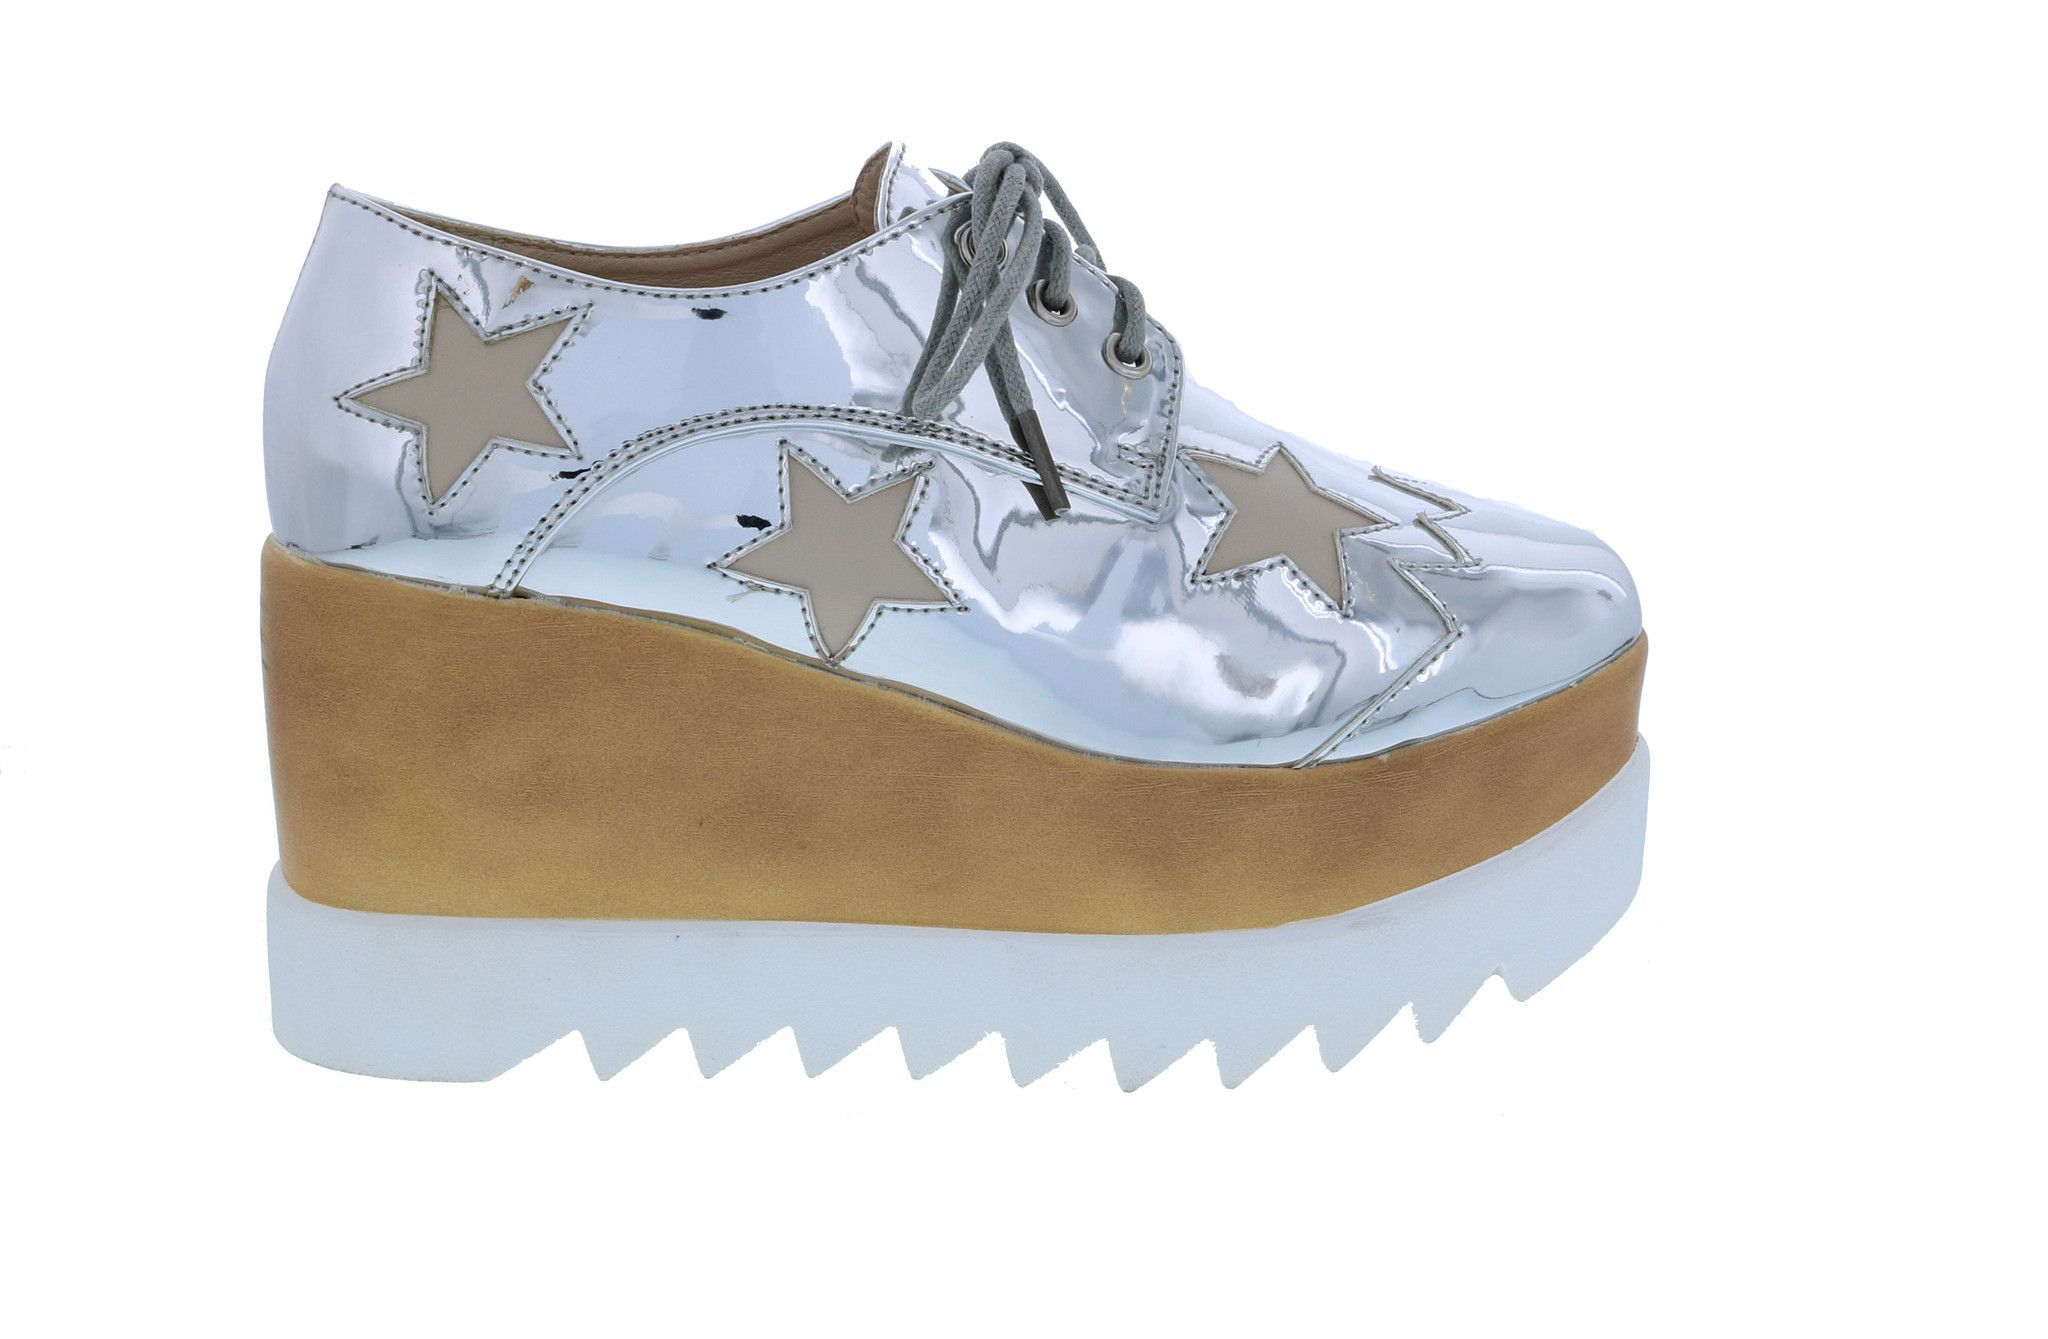 Funky Star Lace Up Vegan Leather Women S Platform Oxford Wedge